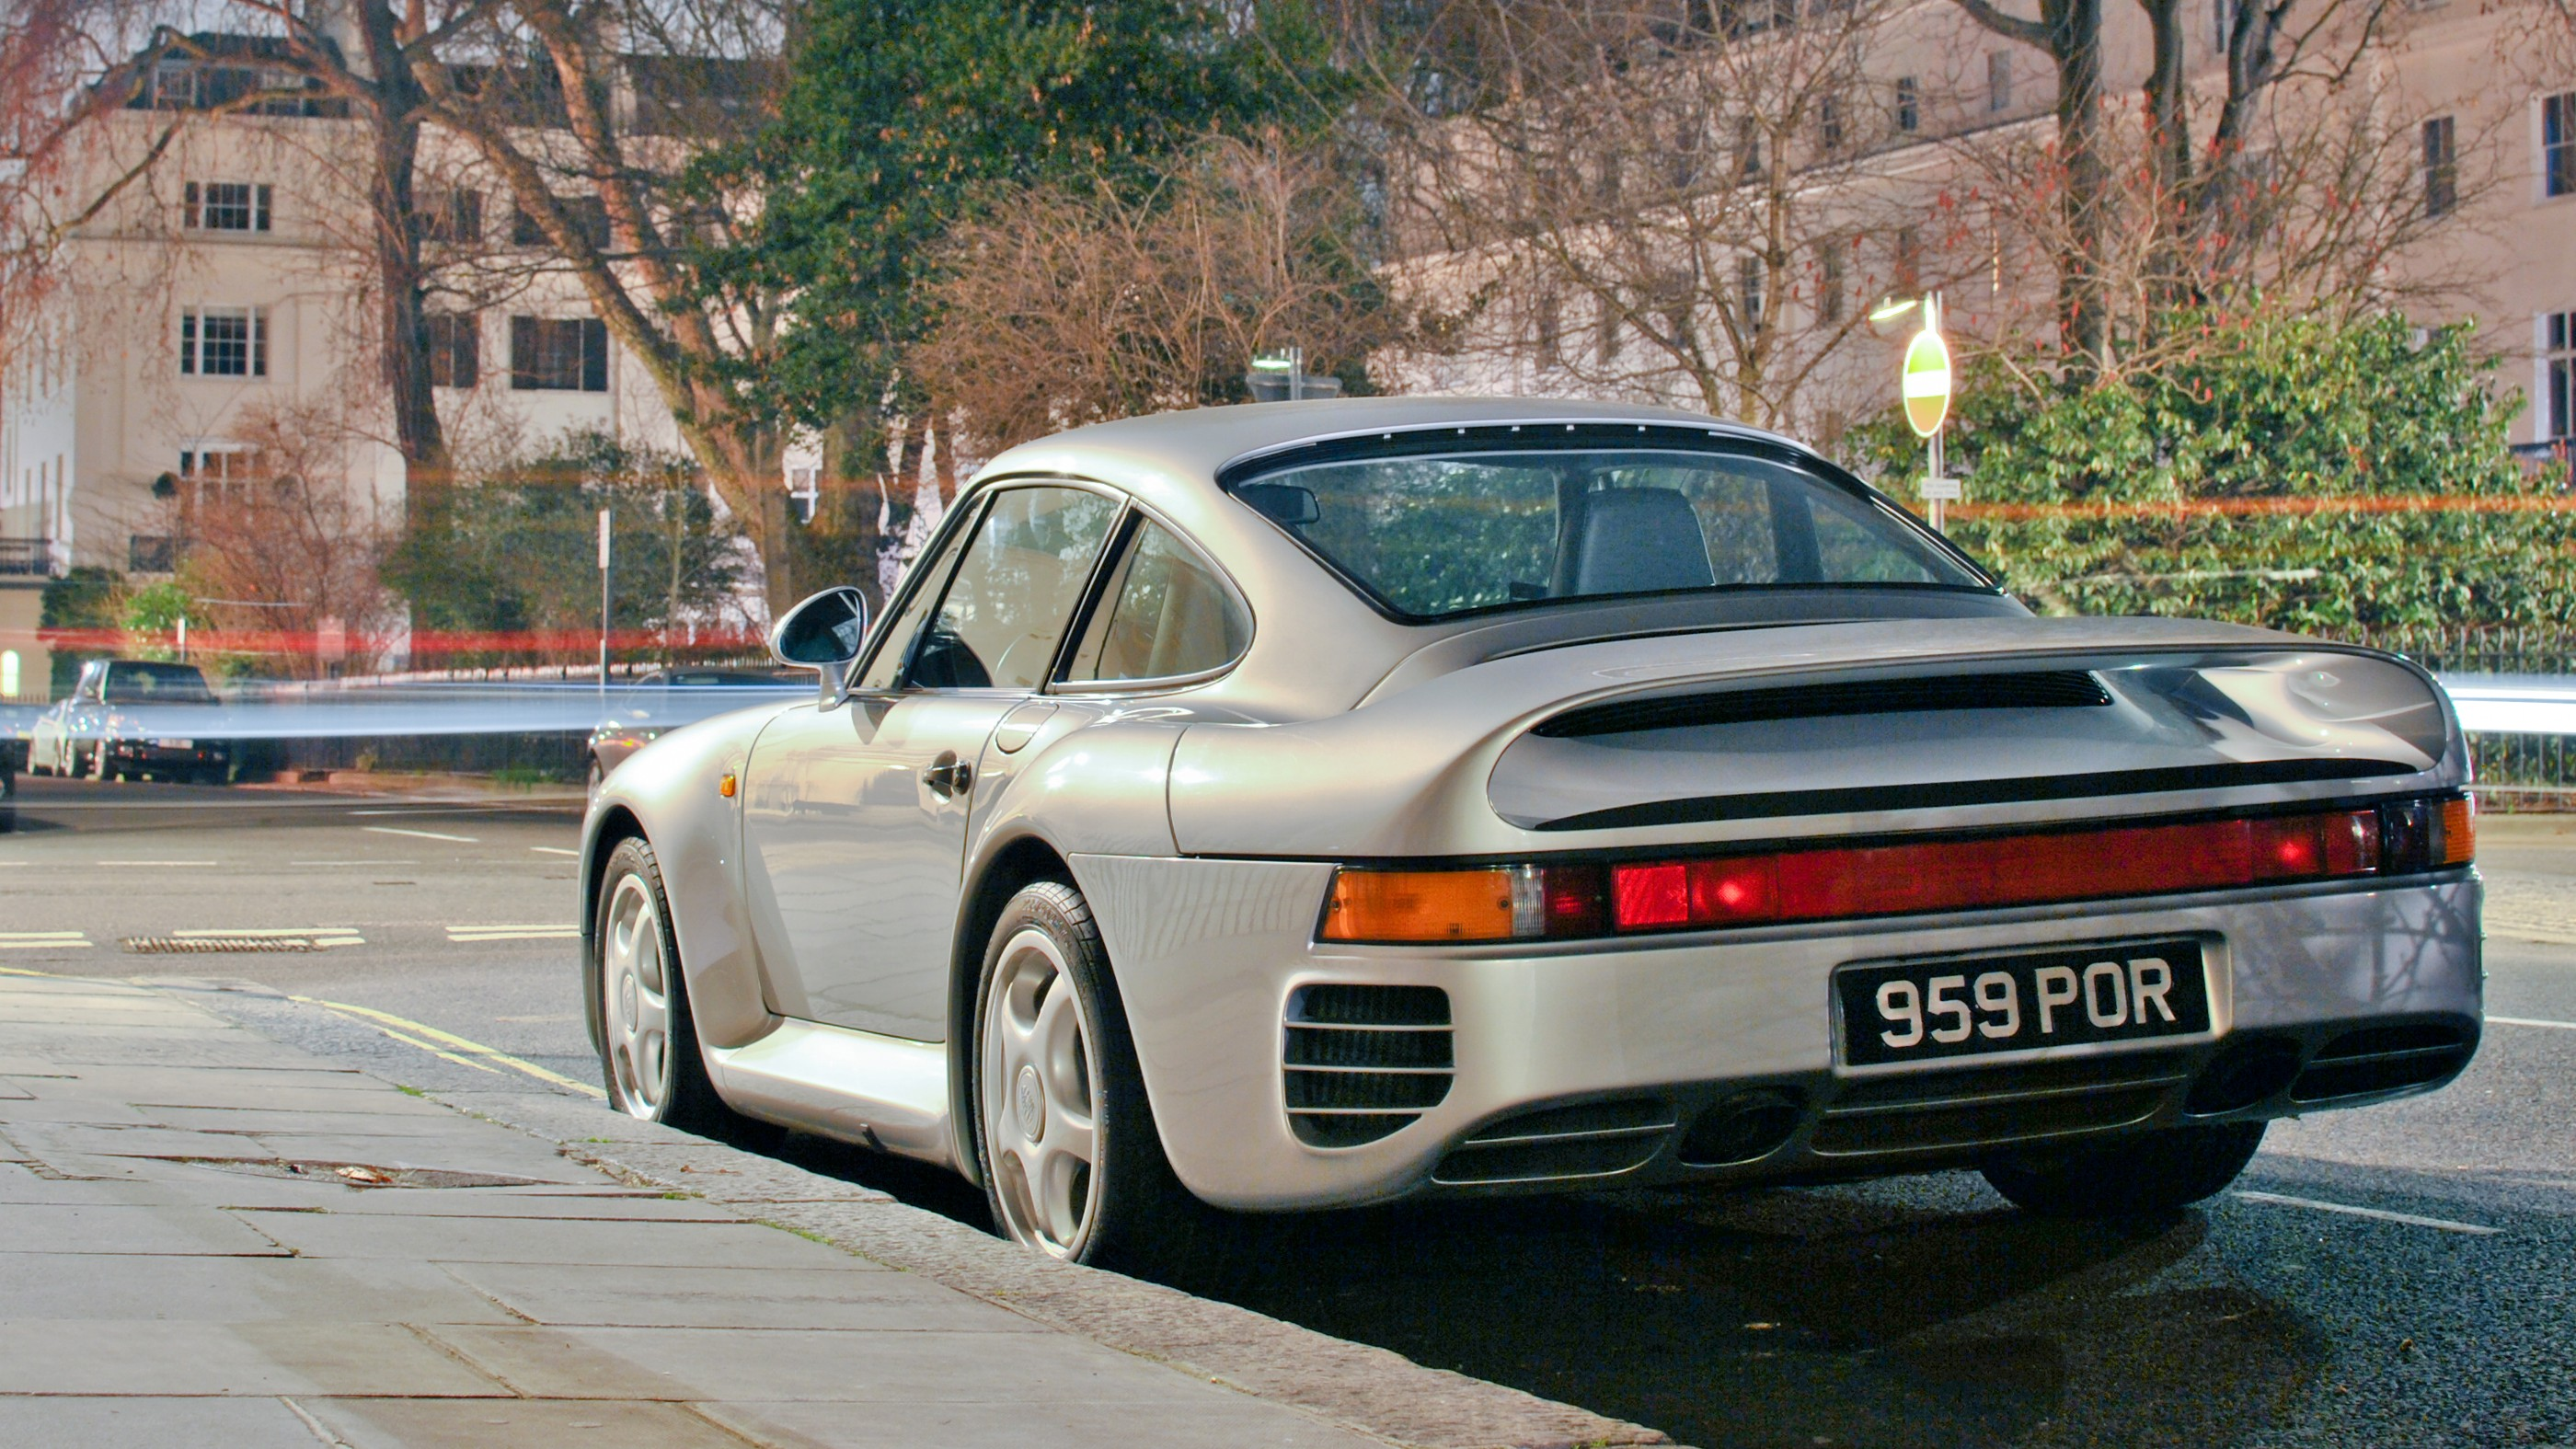 Porsche 959 For Sale >> Porsche 959 Wikipedia